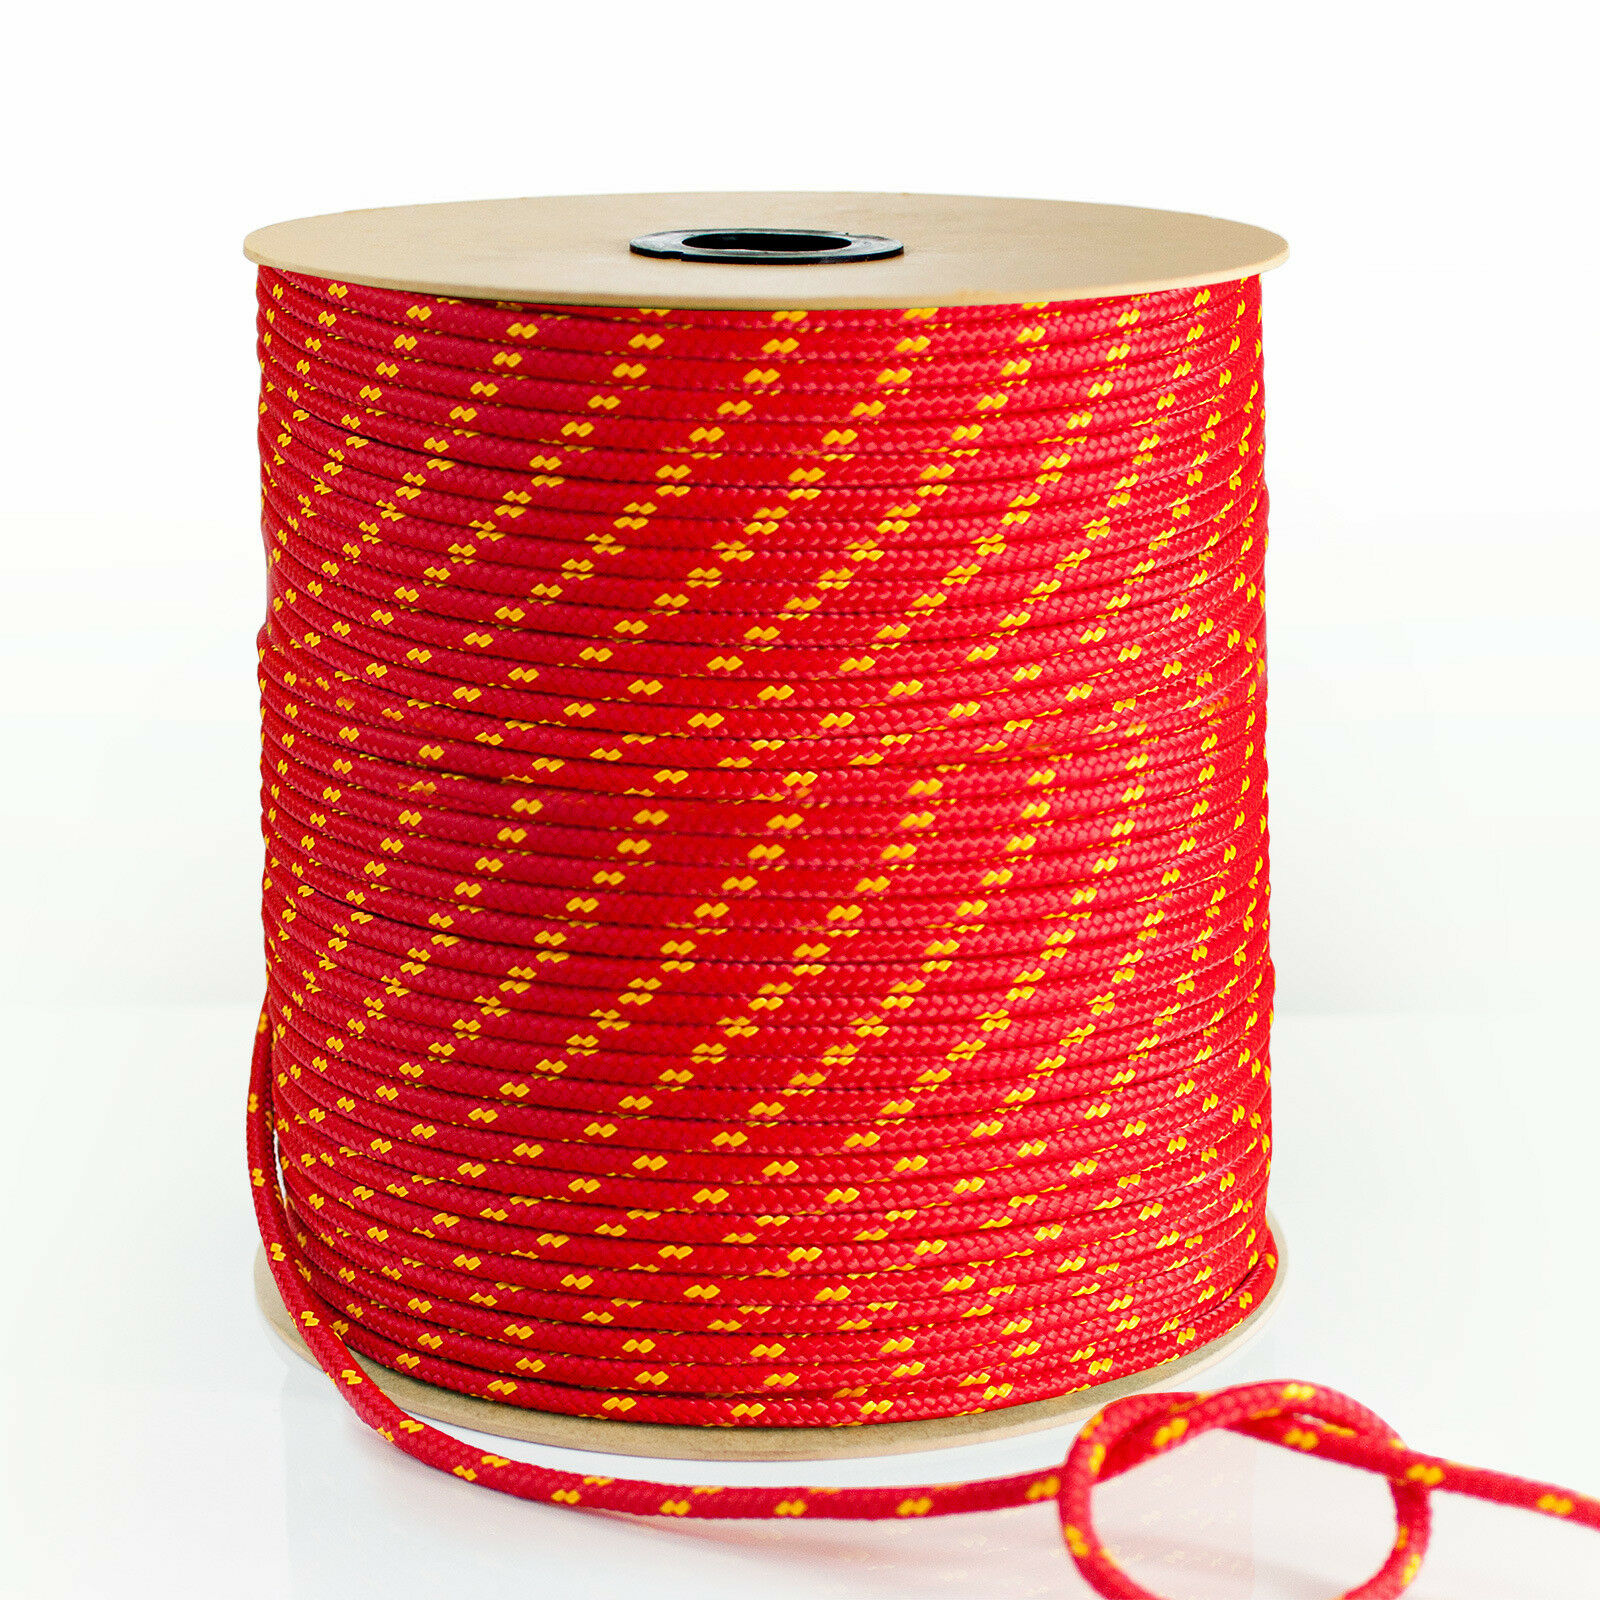 RED POLYPROPYLENE ROPE braided polyrope weatherproof cord sash synthetic fibre